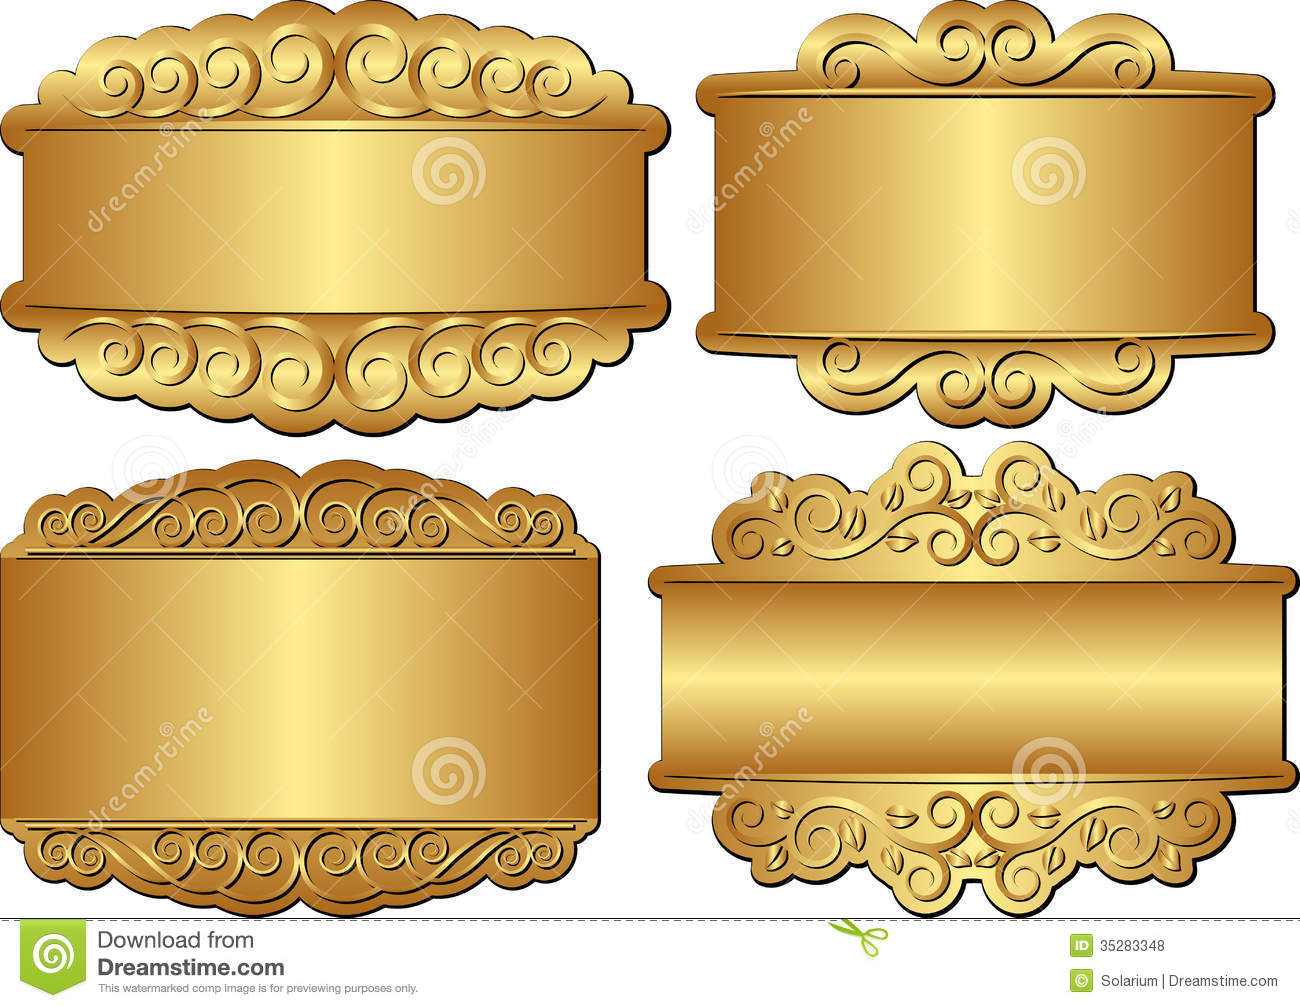 394998432 also Scrap Digital Quick Pages Cluster moreover Flower Vector Free together with Images About D Textures On Wood Texture furthermore Royalty Free Stock Photos Golden Banners Set Ornamentc Image35283348. on decorative designs clip art